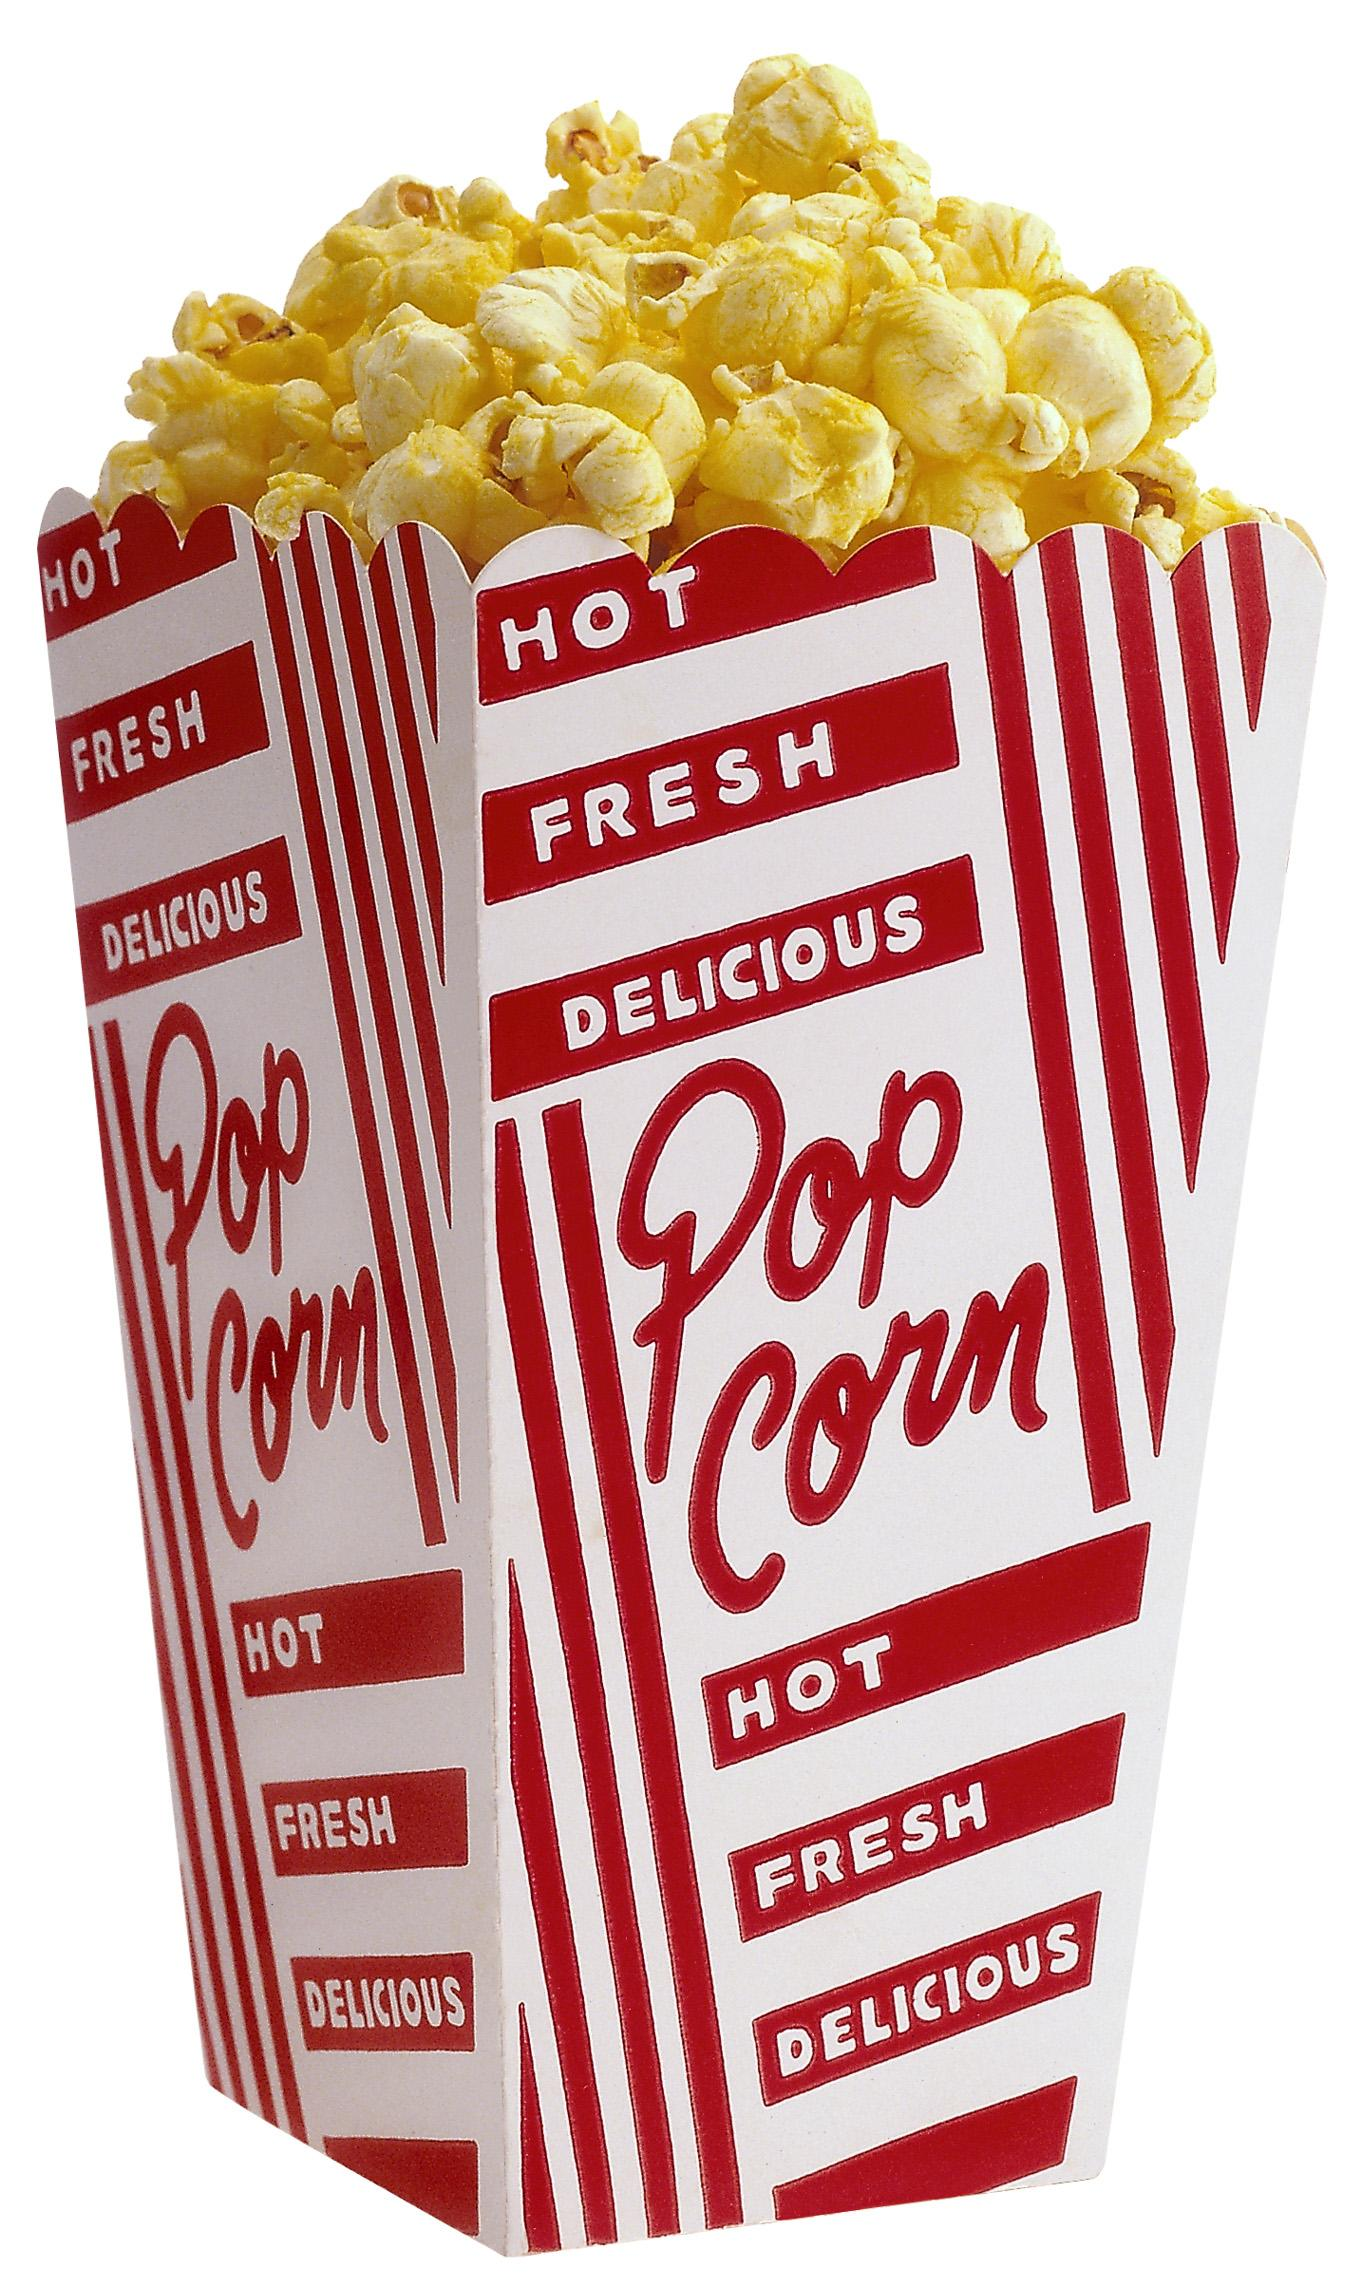 Movie Popcorn Png 15788 Hd Wallpapers Background in Movies - Wugange pluspng.com - Butter HD PNG